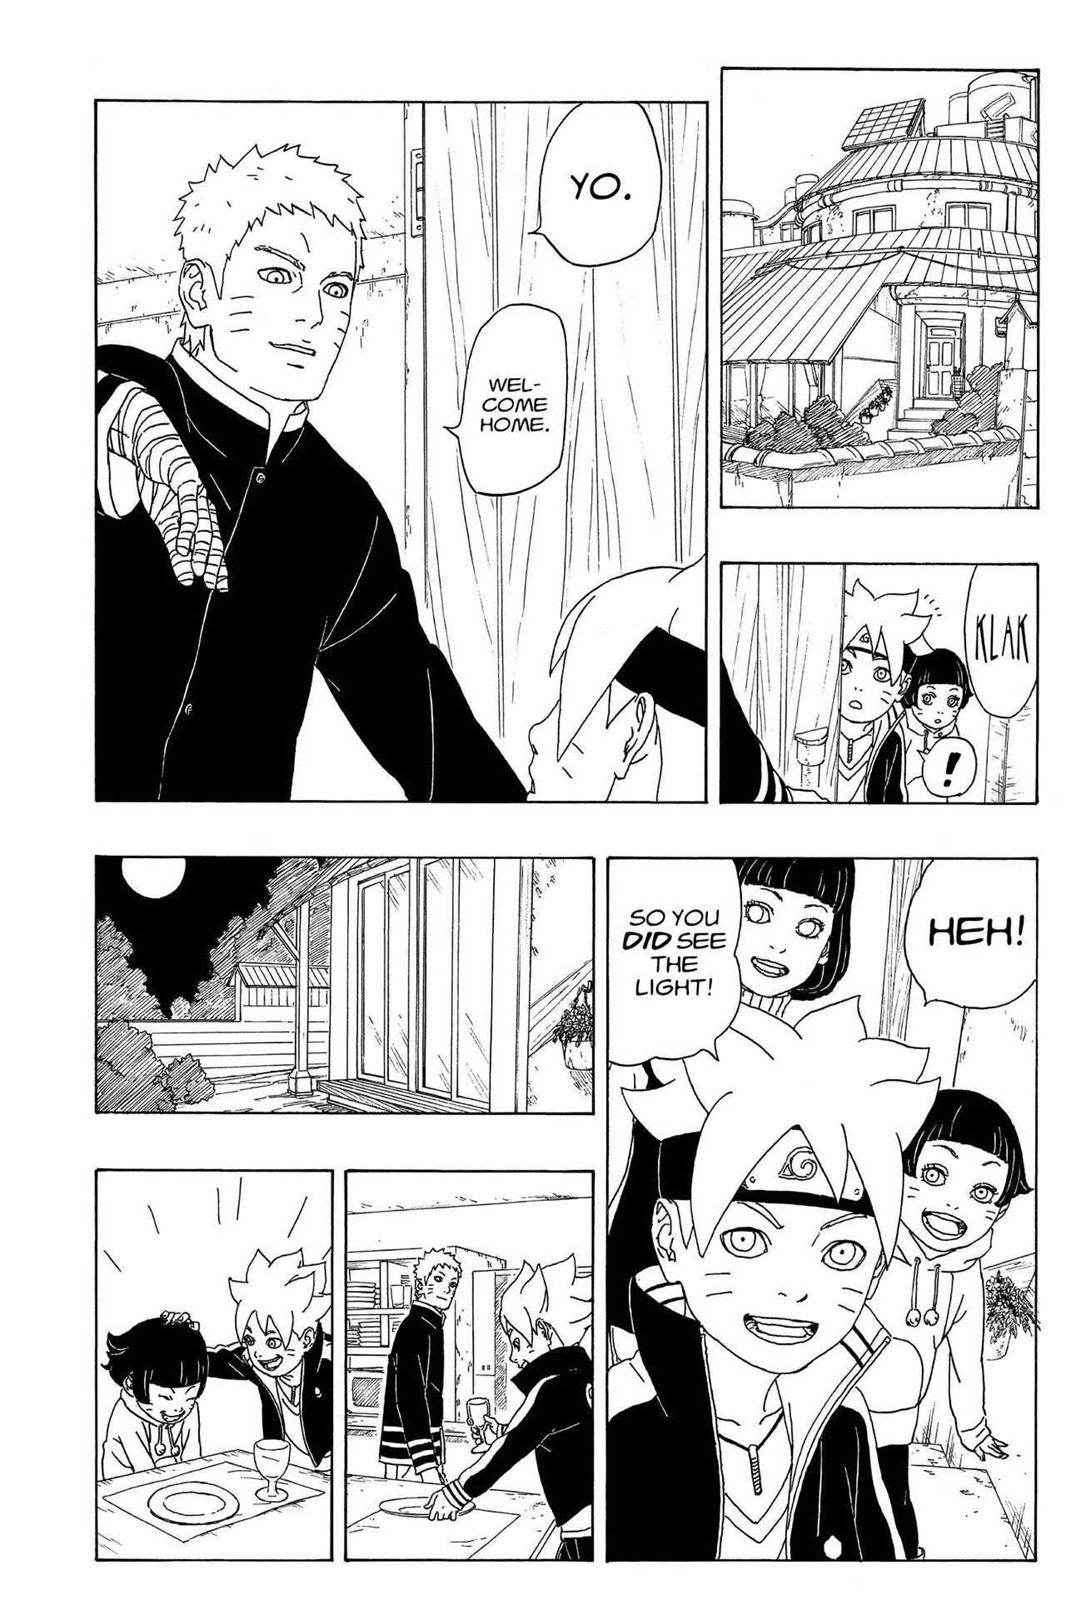 Boruto Naruto Next Generations Chapter 001 Boruto